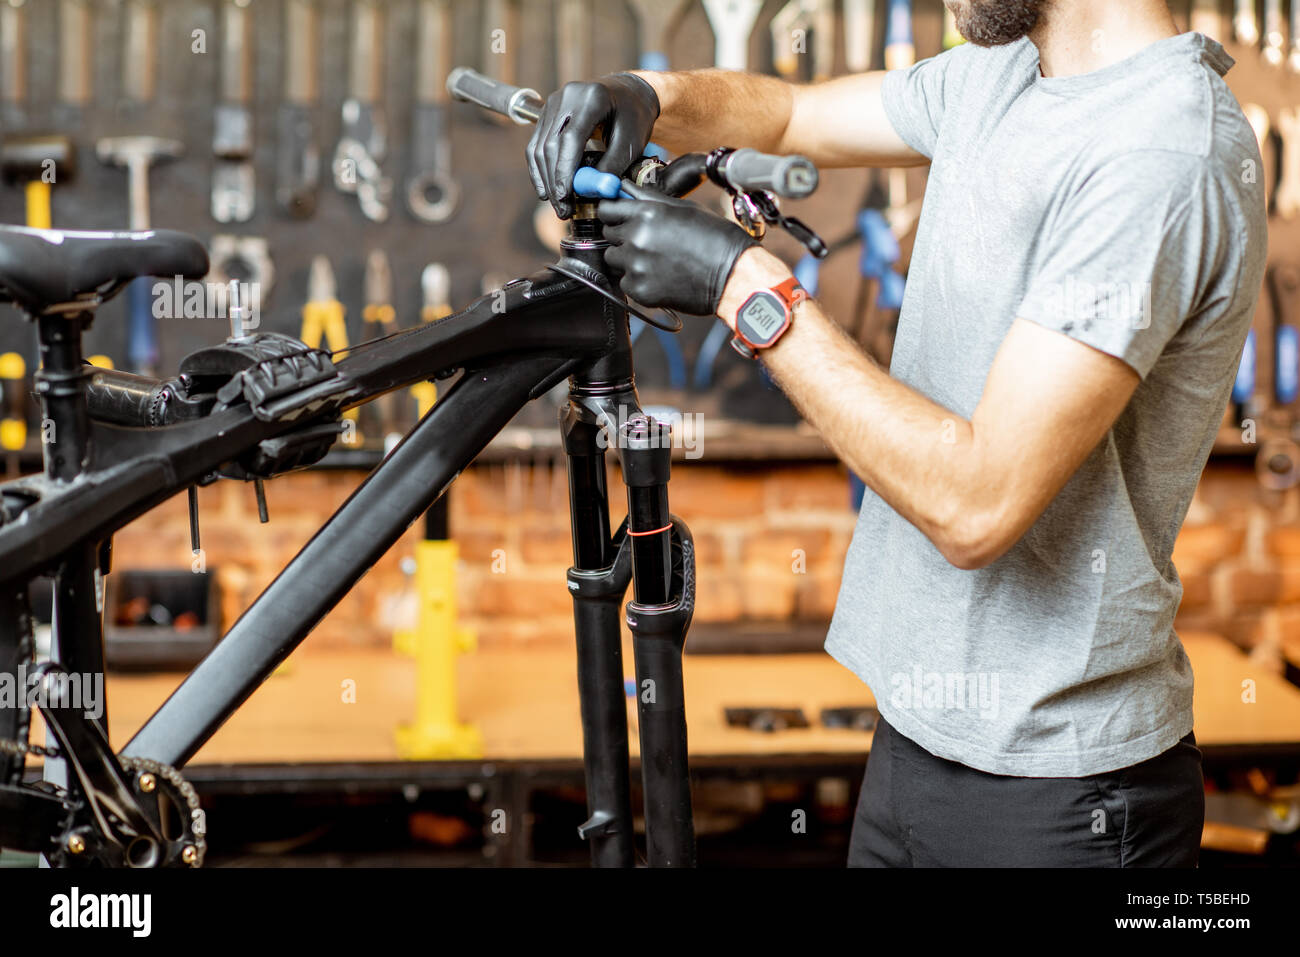 Man removing steering wheel from the bicycle at the workshop Stock Photo